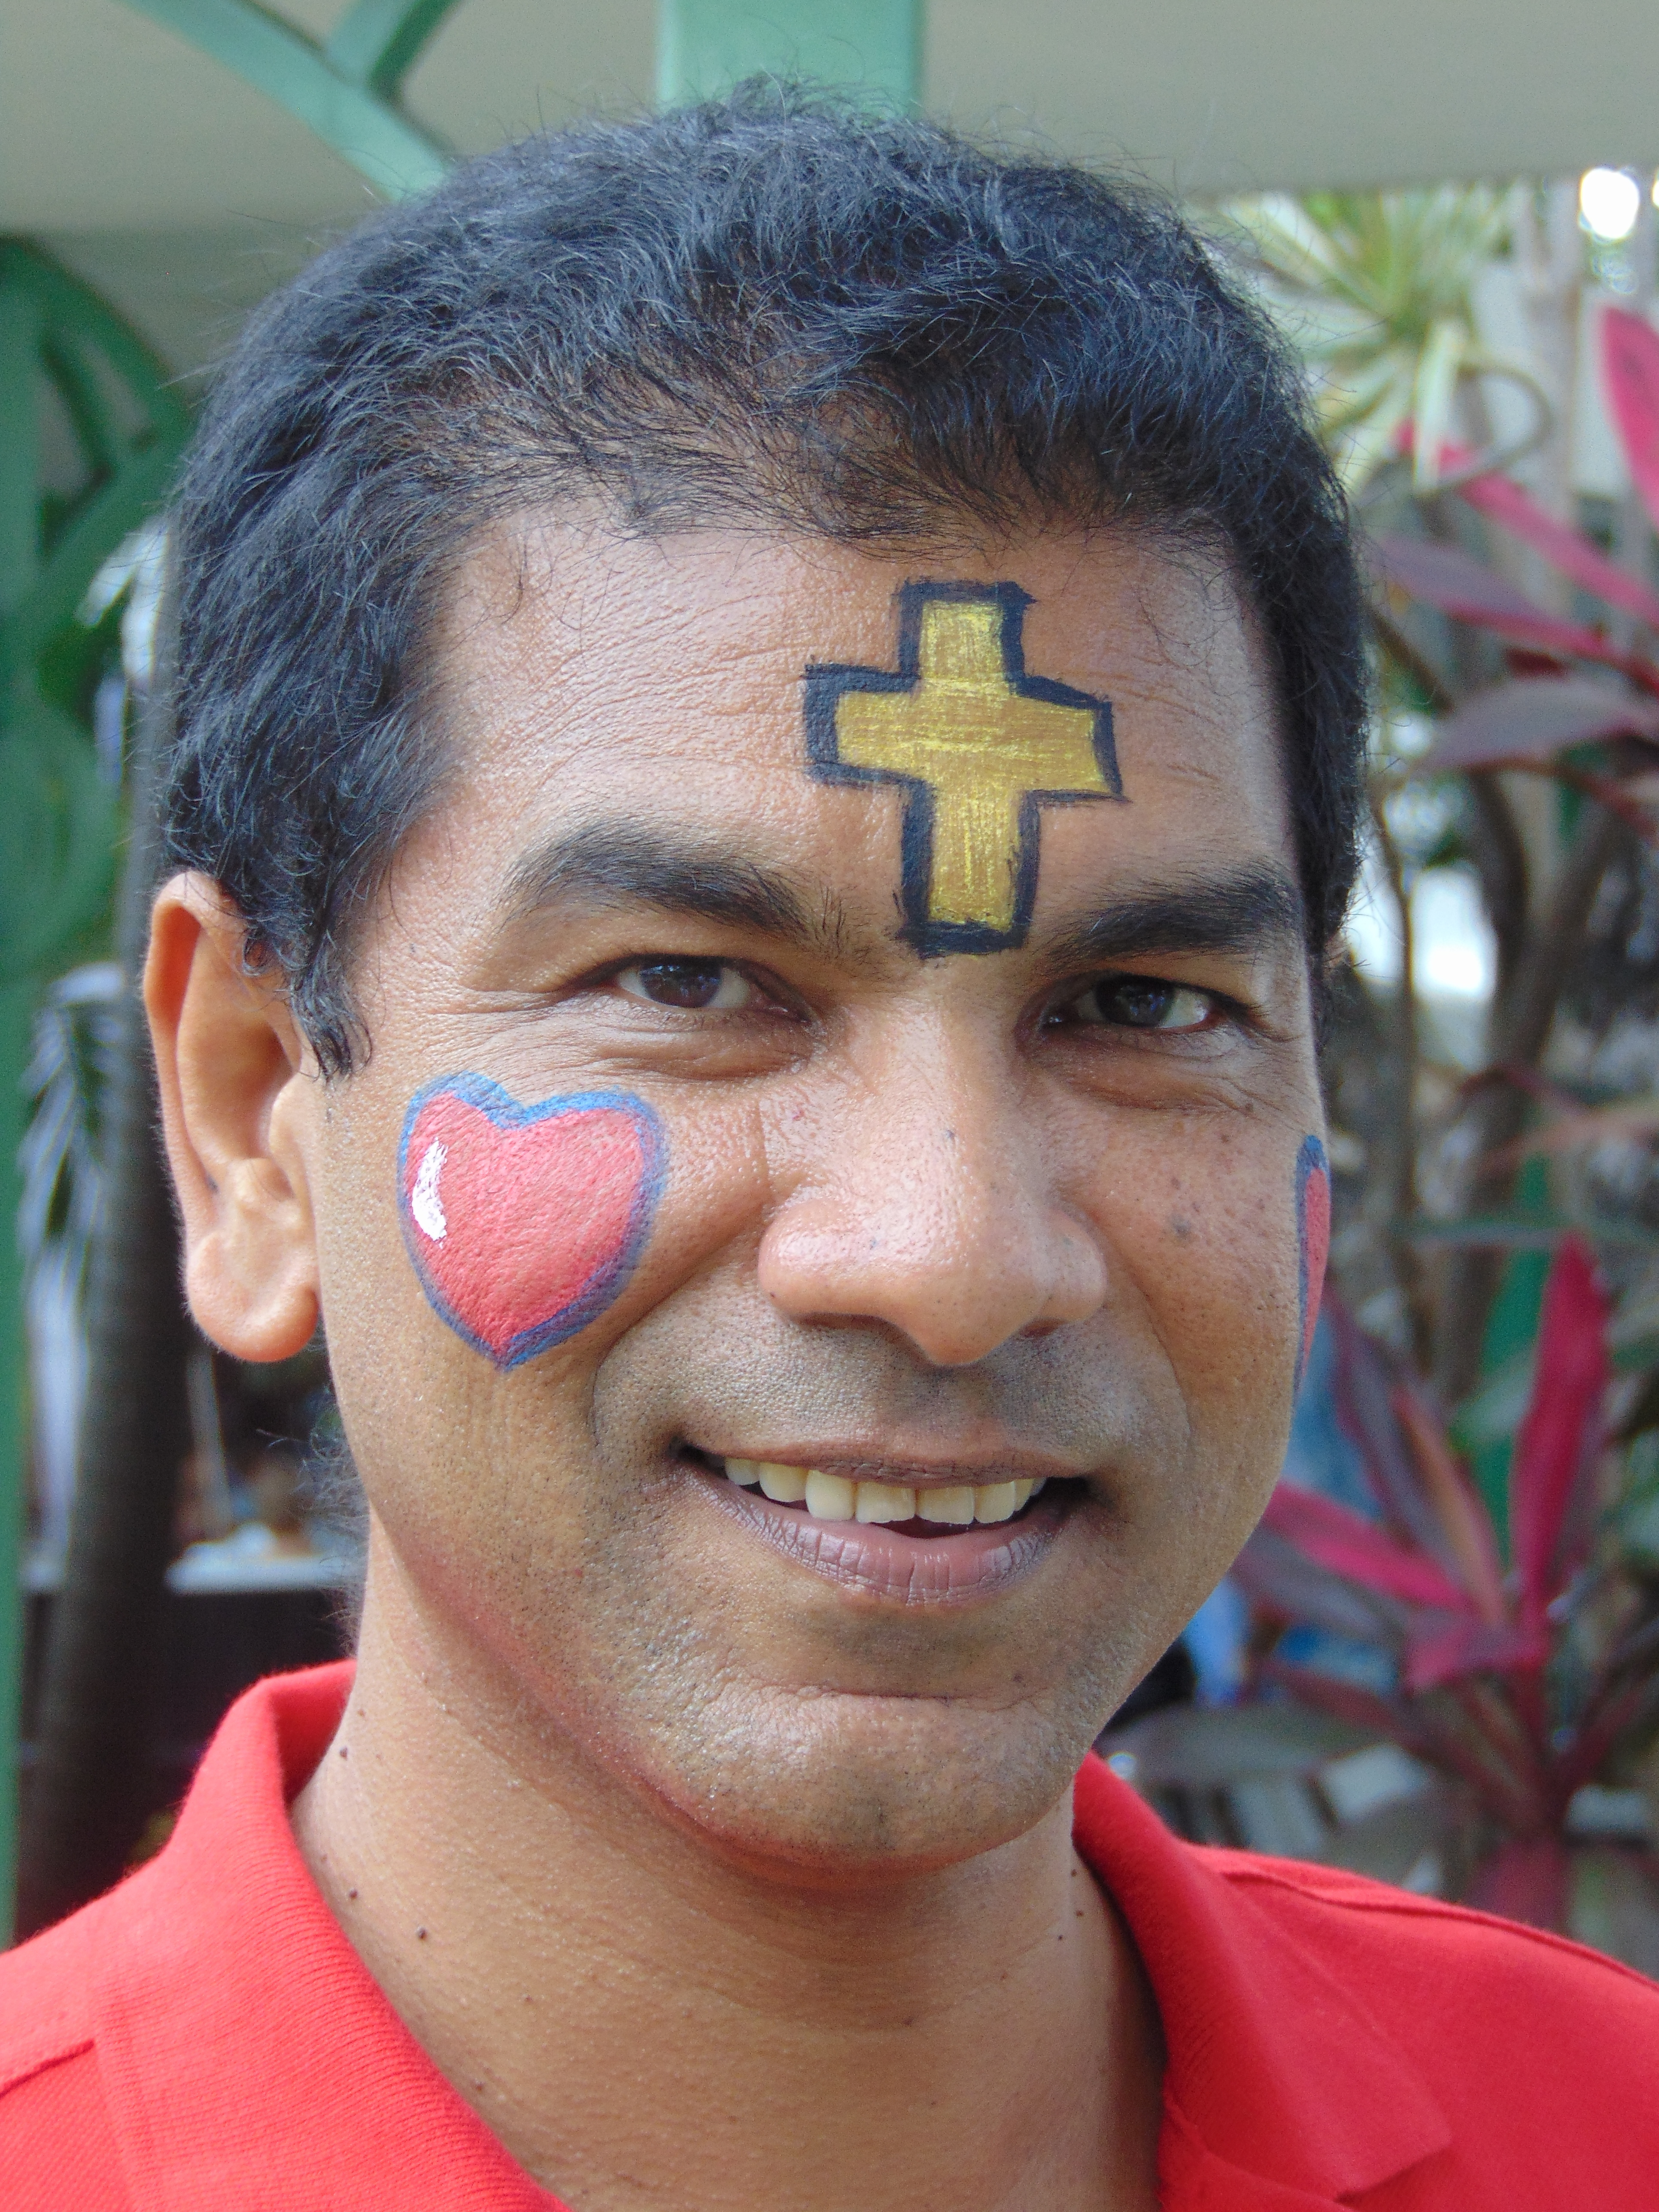 Fr. Howie in war paint